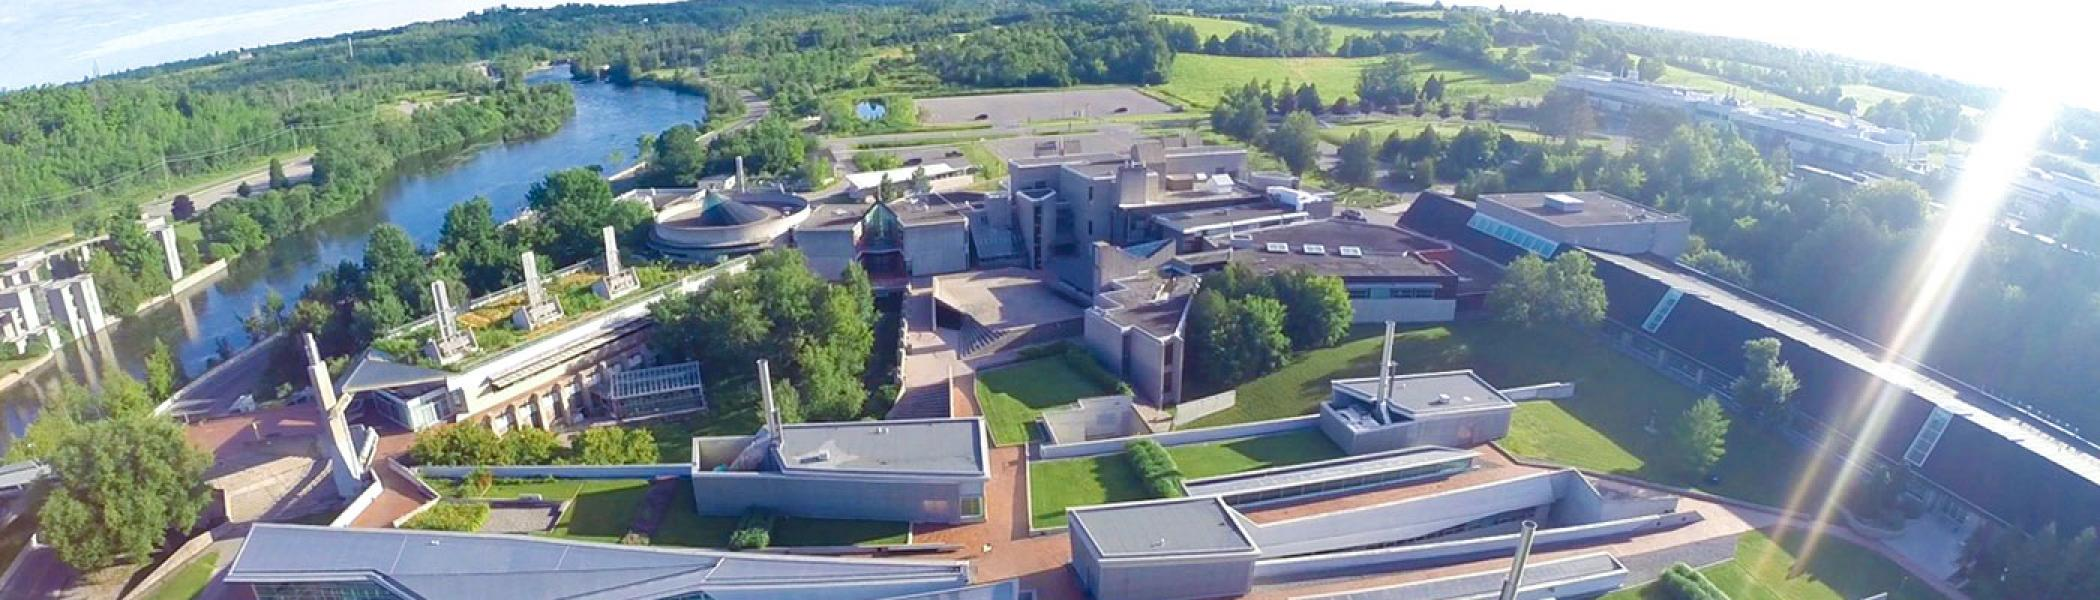 a birds eye view of the trent campus